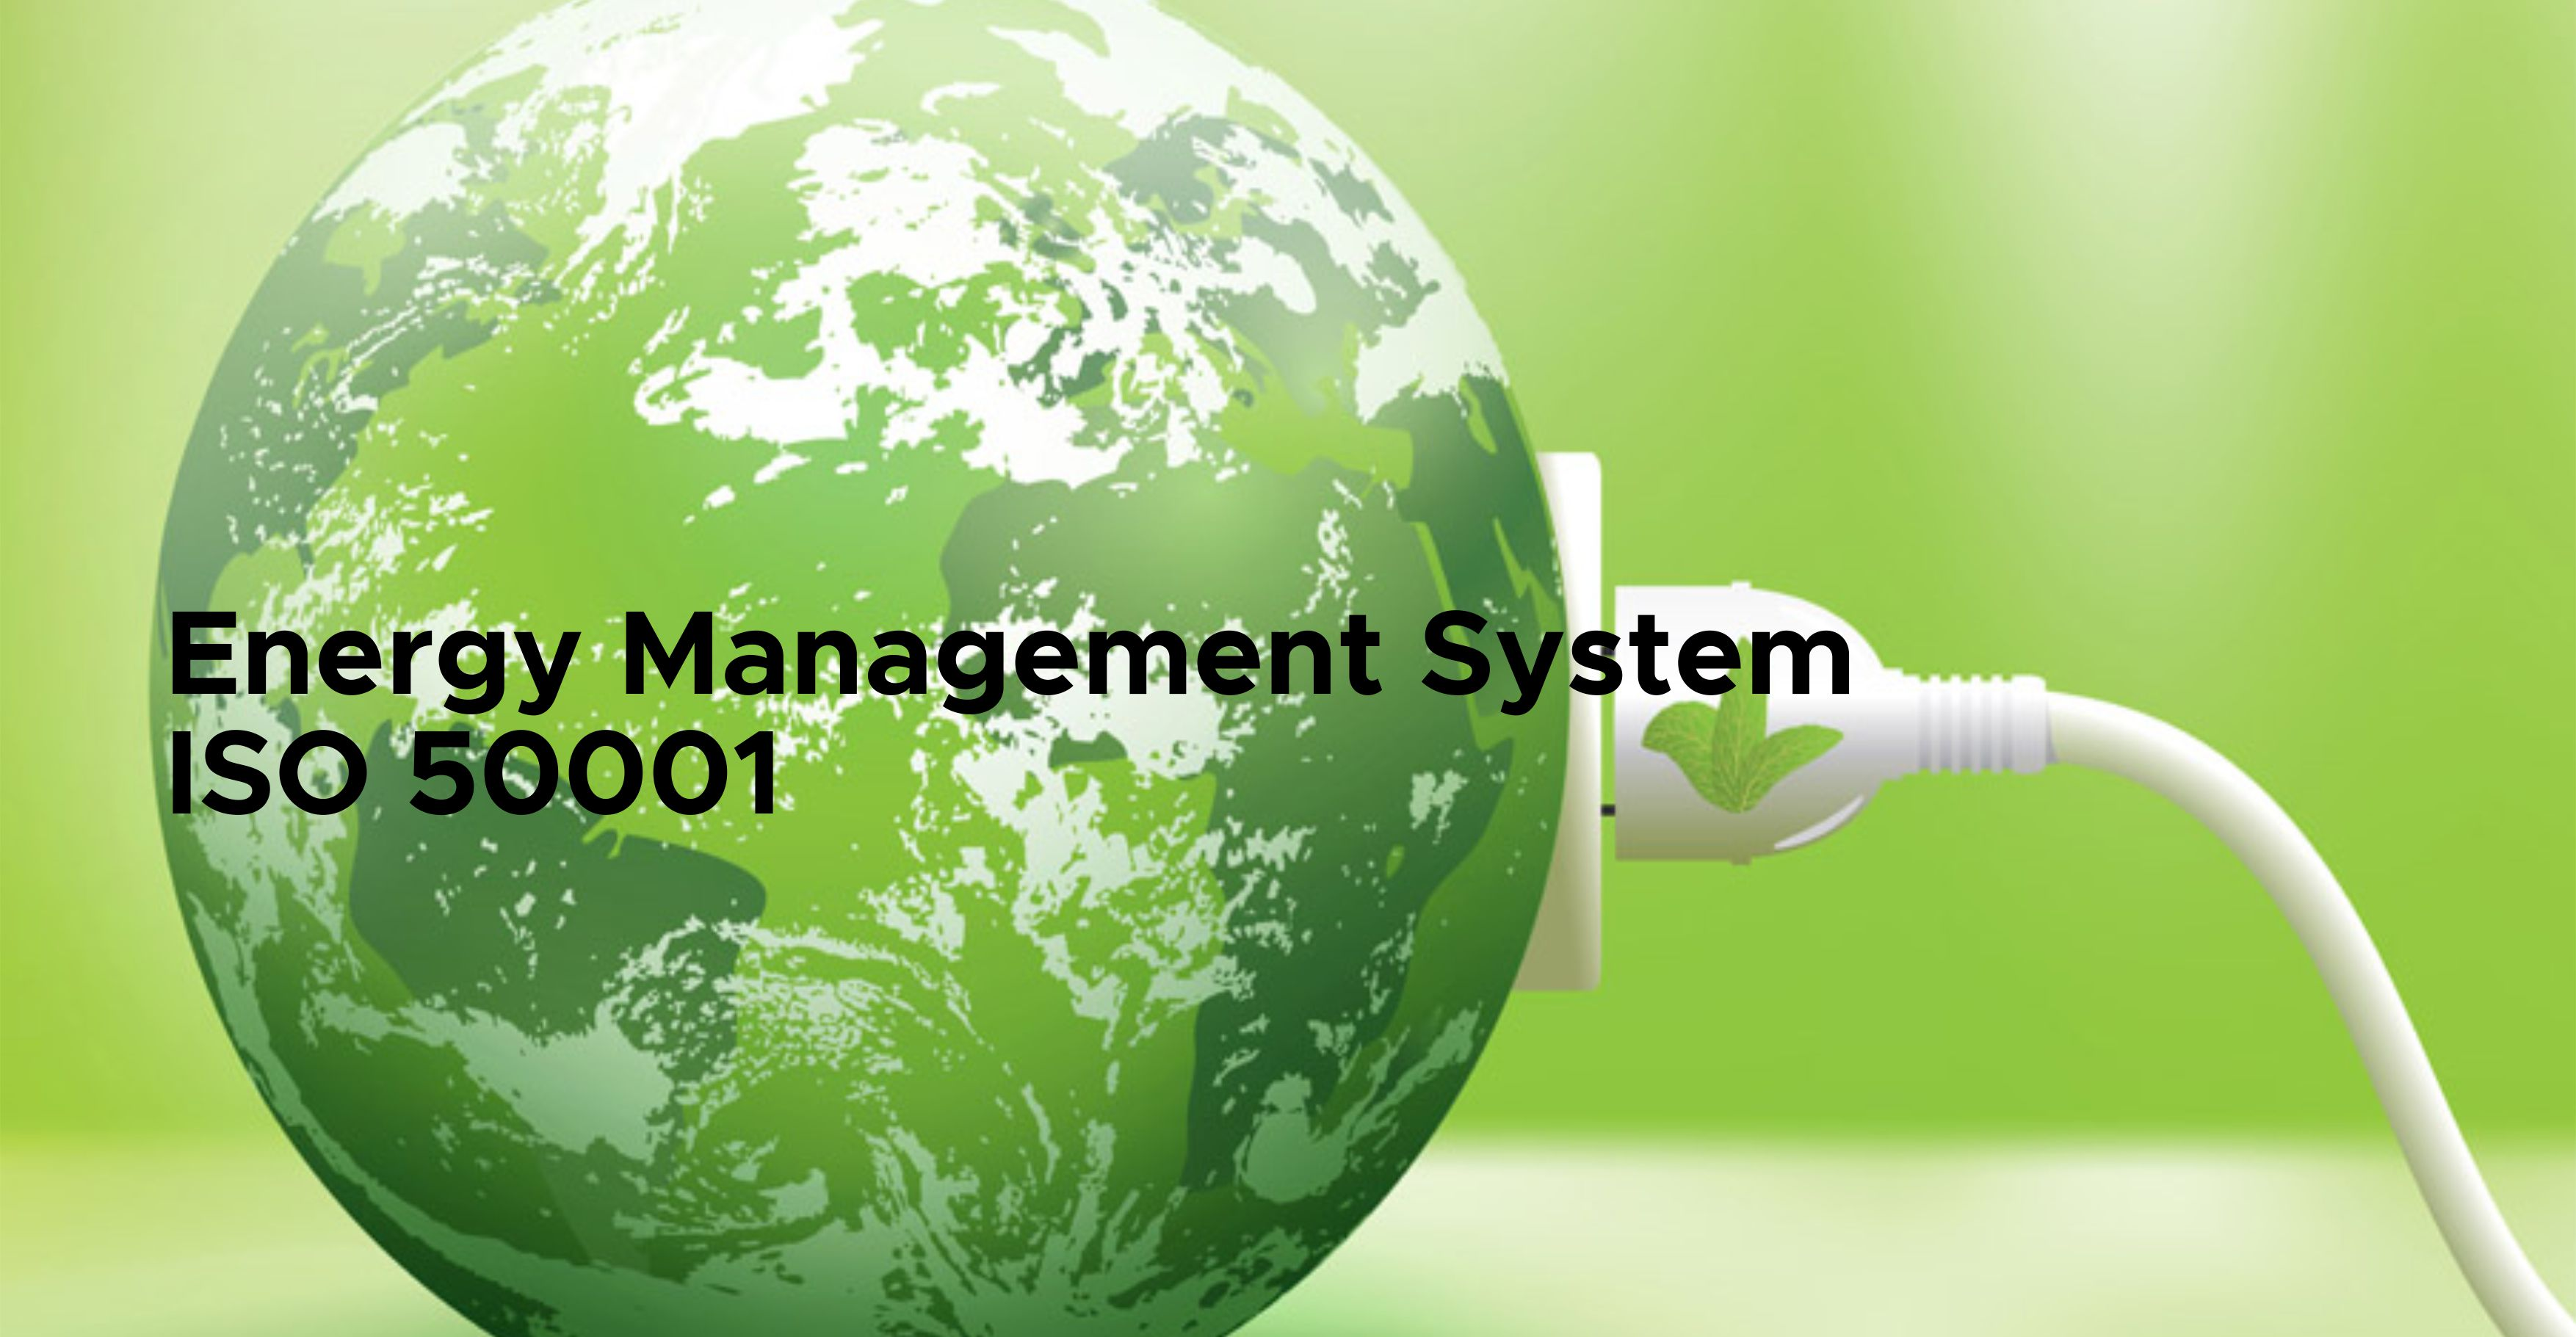 ISO 50001:2018 - Energy Management System